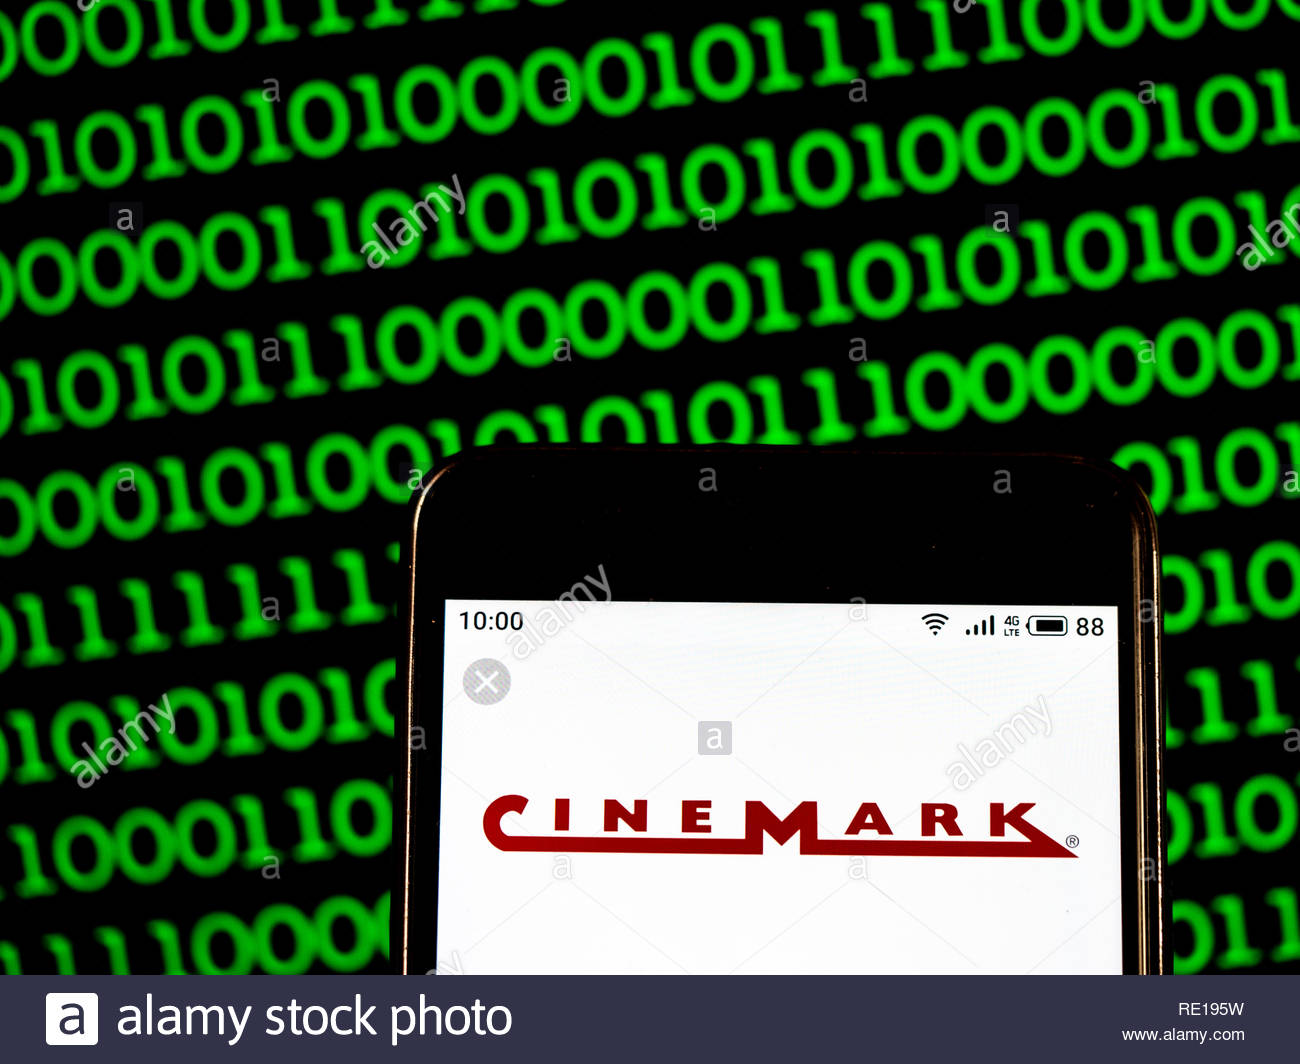 Cinemark Theatres Movie theater company logo seen displayed on smart